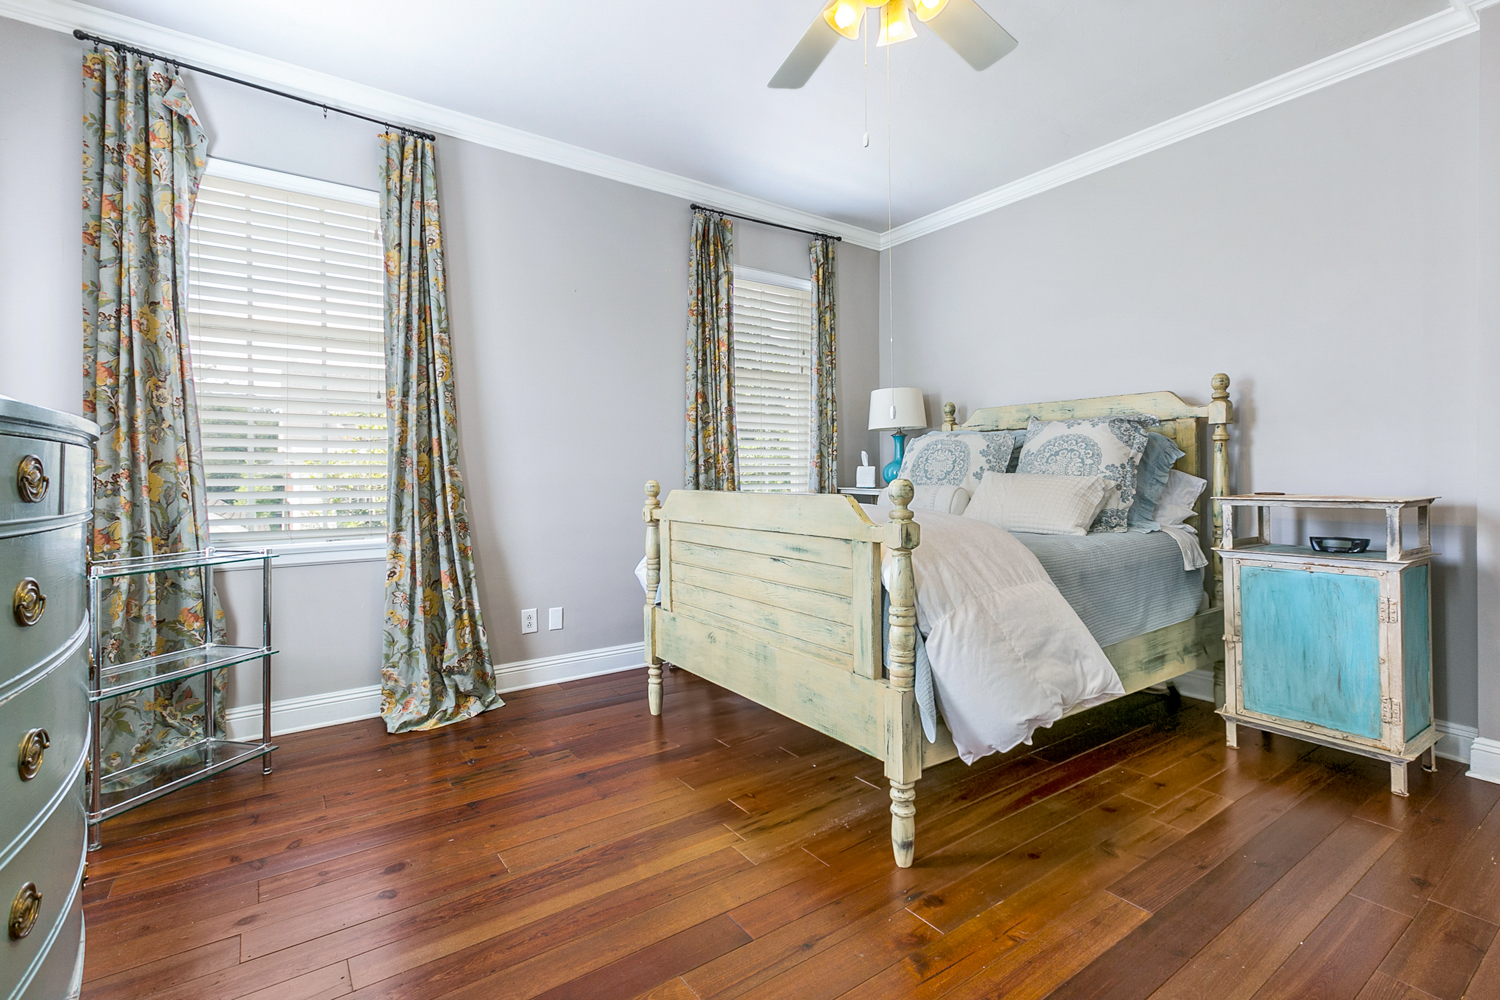 Garden District, Apartment, 2 beds, 1.0 baths, $3000 per month New Orleans Rental - devie image_13